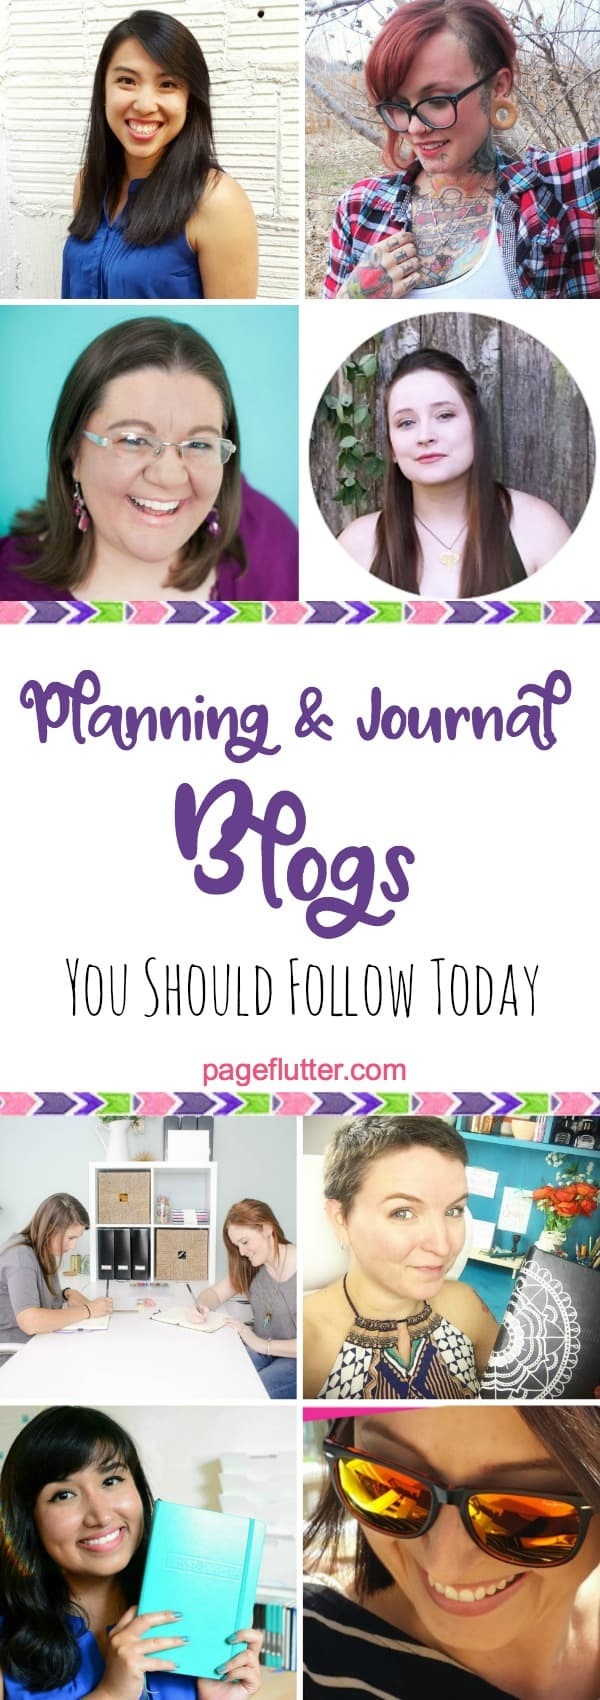 My top blogs to follow for planning, bullet journaling, productivity, and intentional living.